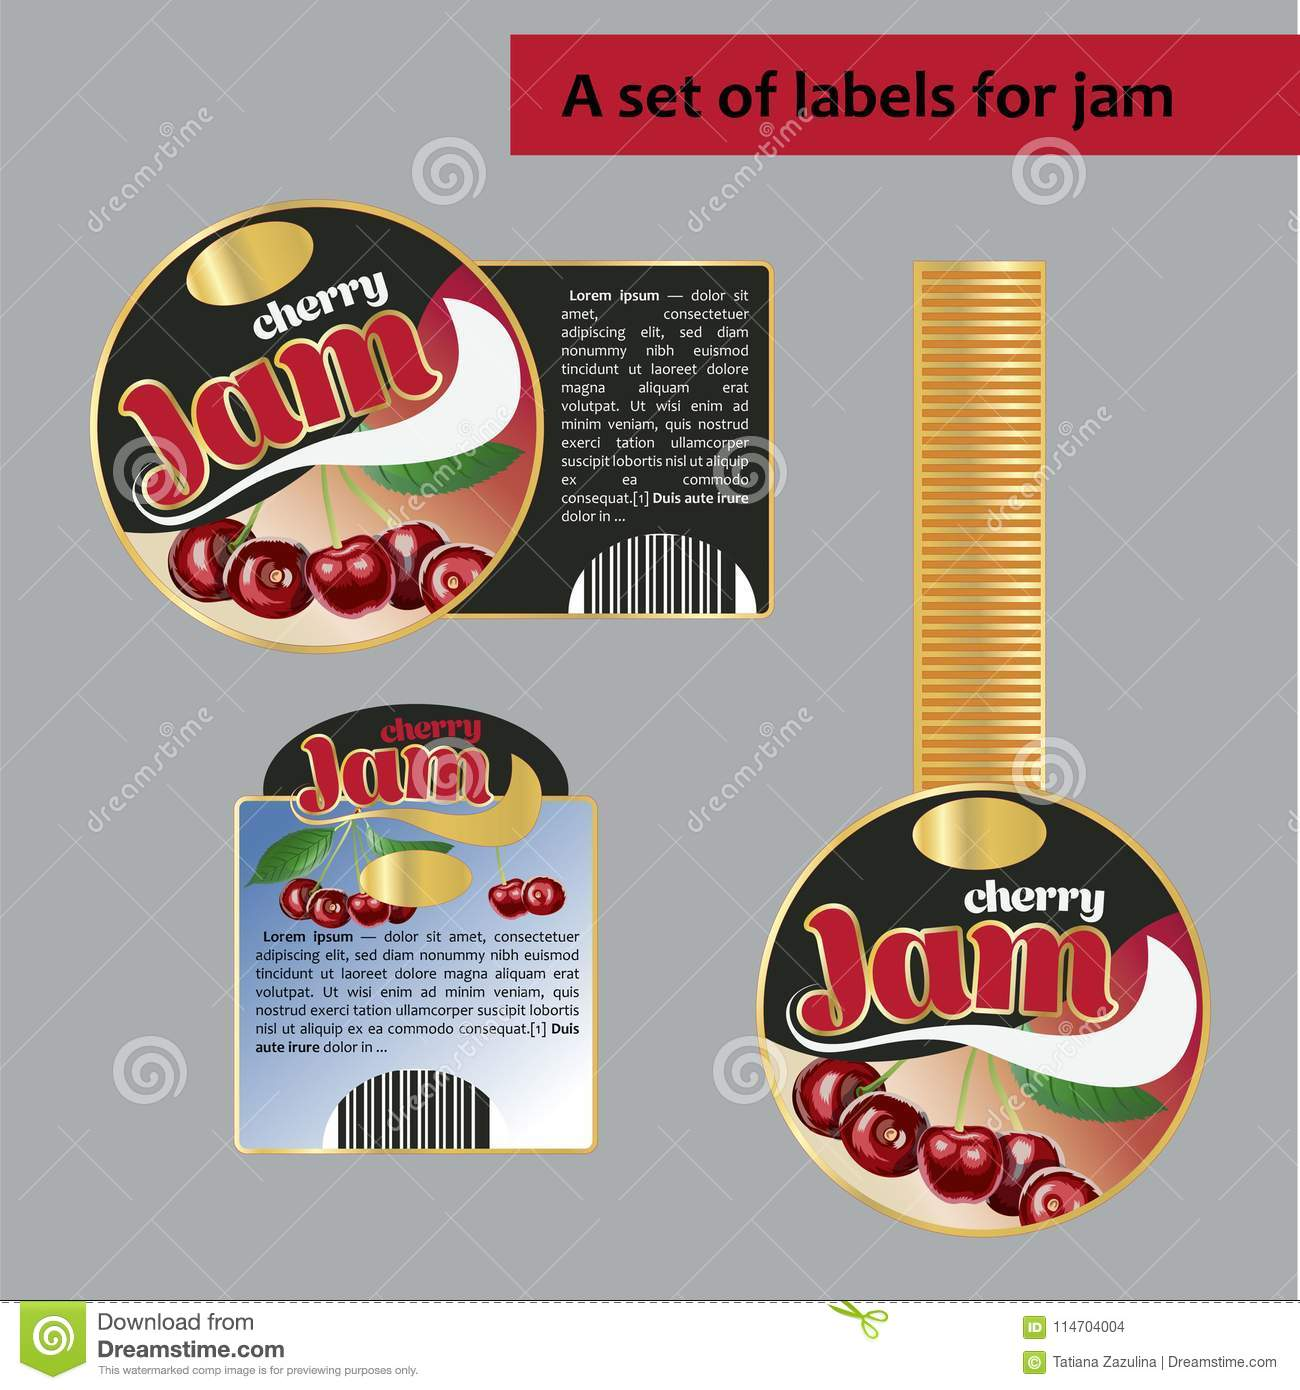 A set of labels for cherry jam. Isolated image.